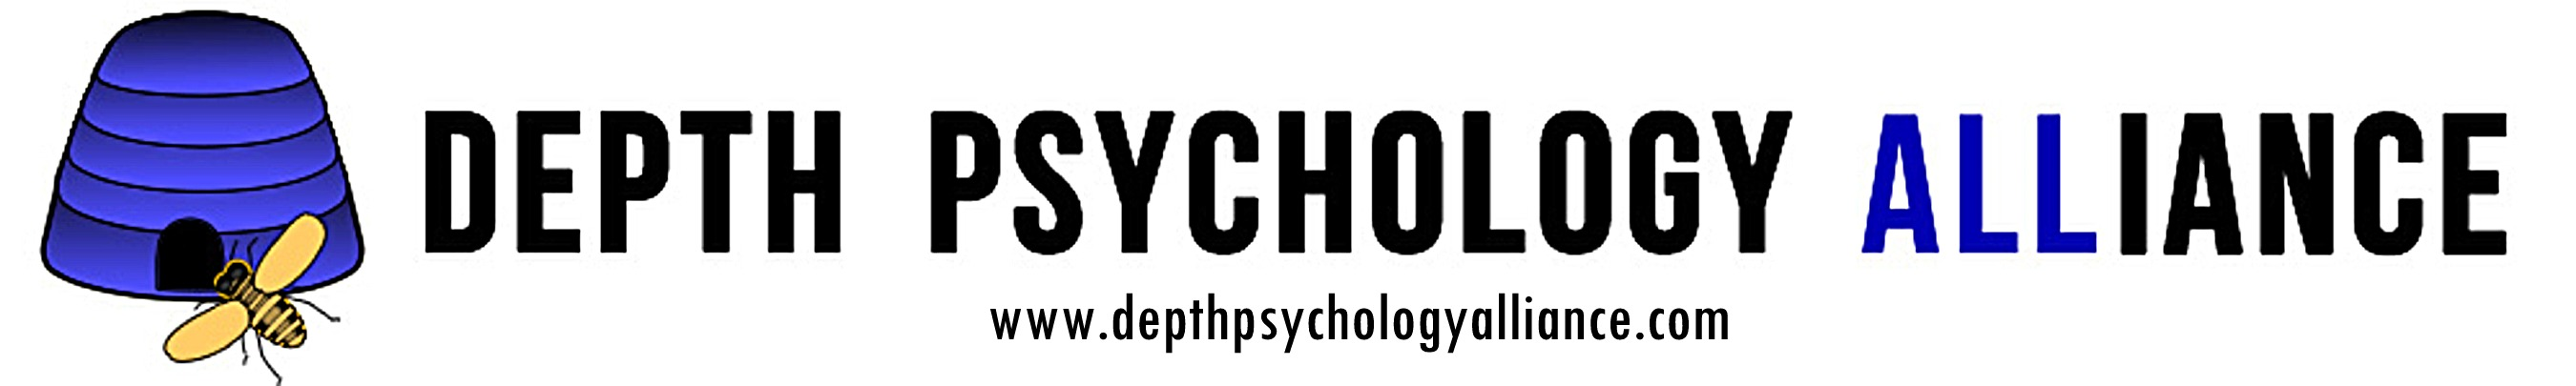 Depth Psychology Alliance - Engaging the World With Soul